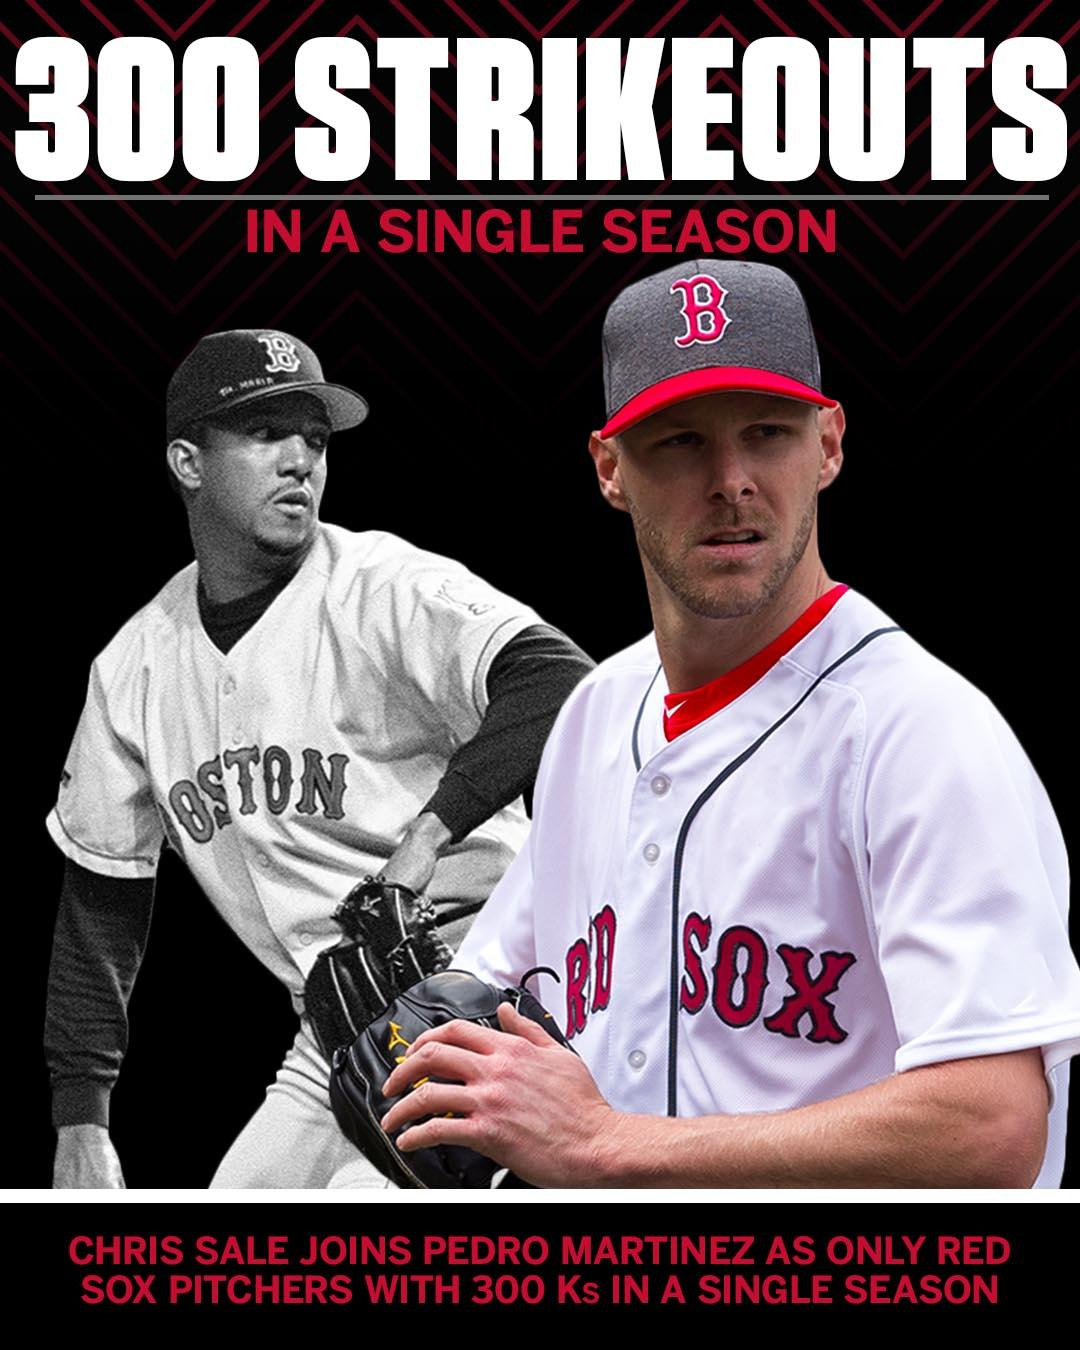 Didn't take long for Chris Sale to join Boston's pitching elite. https://t.co/J88FRkYzI9